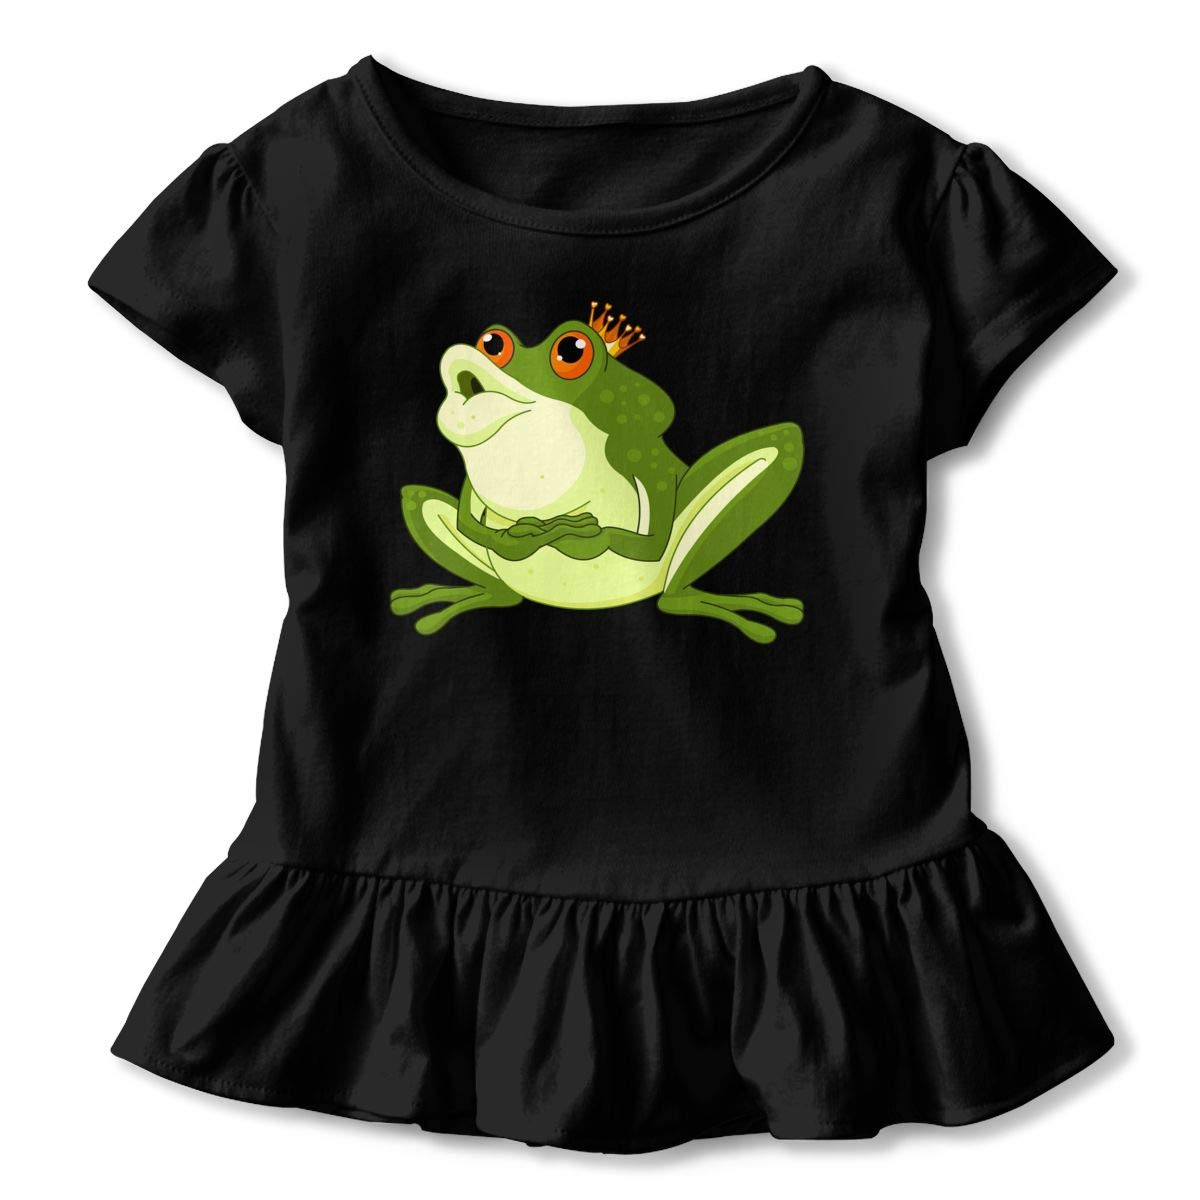 JVNSS Art Design Green Prince Frog with Crown Comfort Infant Girl Flounced T Shirts Tee Shirts for 2-6T Baby Girls